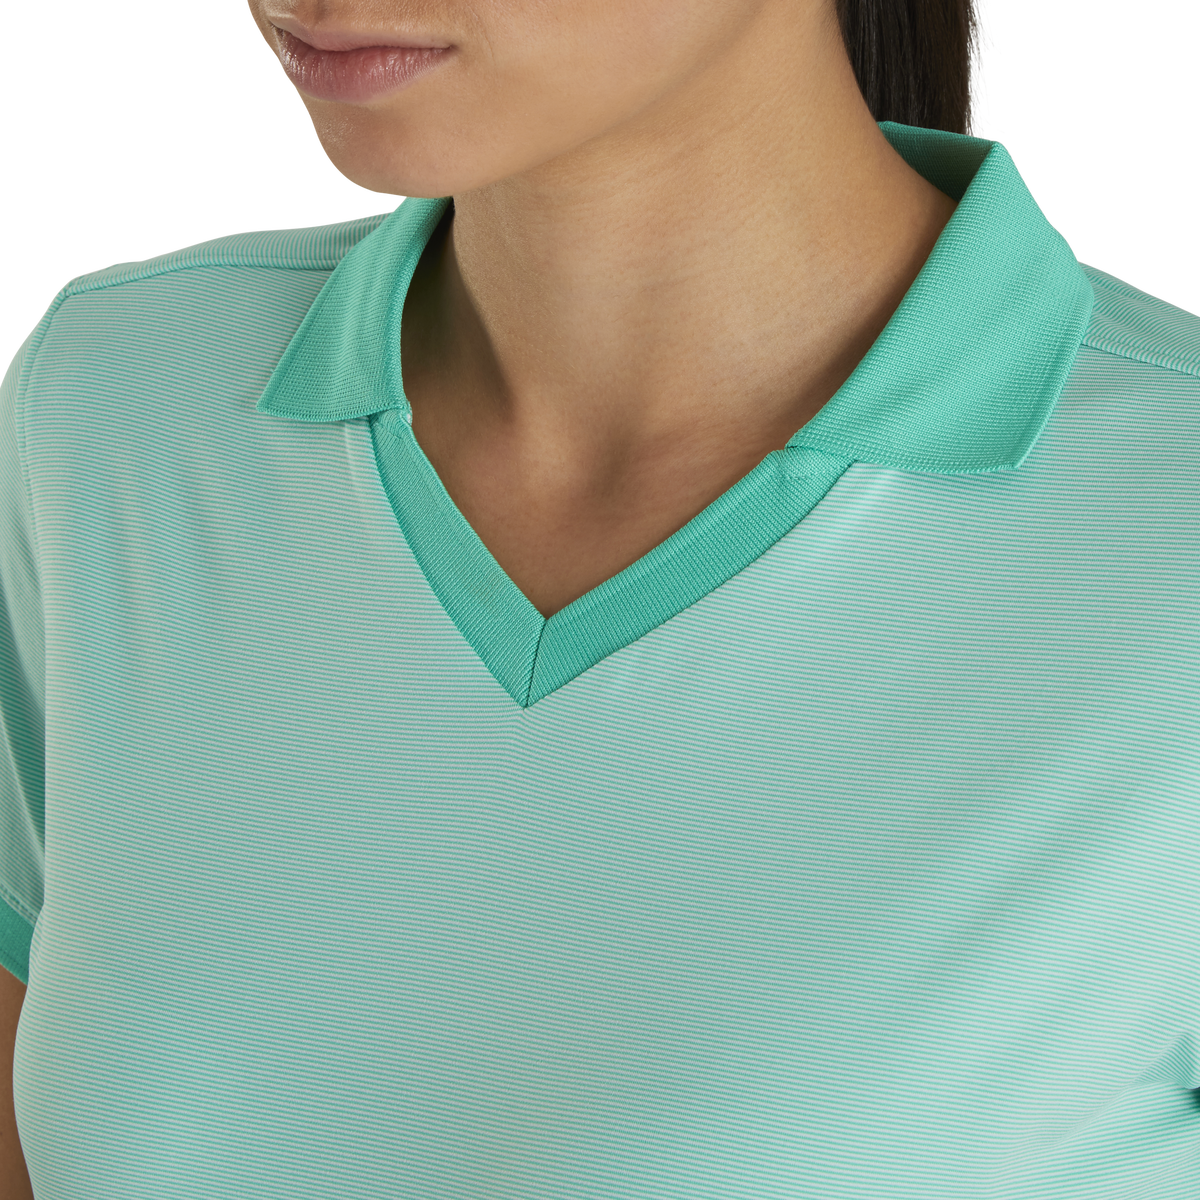 End On End Open Collar Women